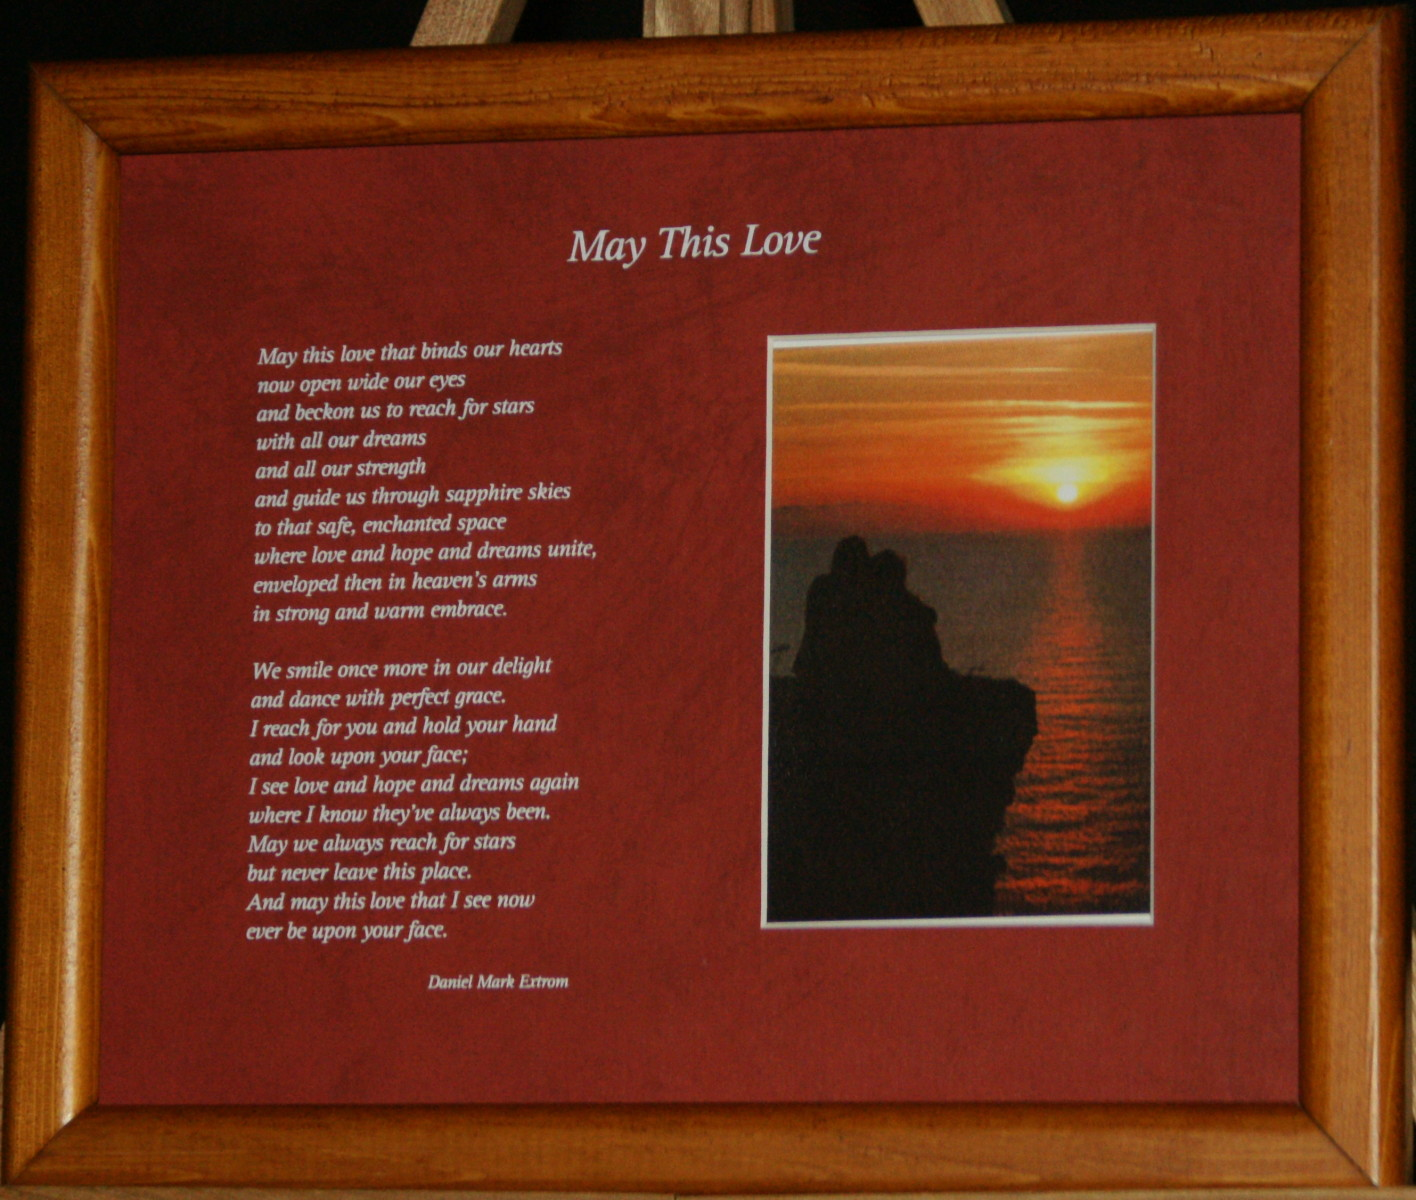 May This Love: A Love Poem